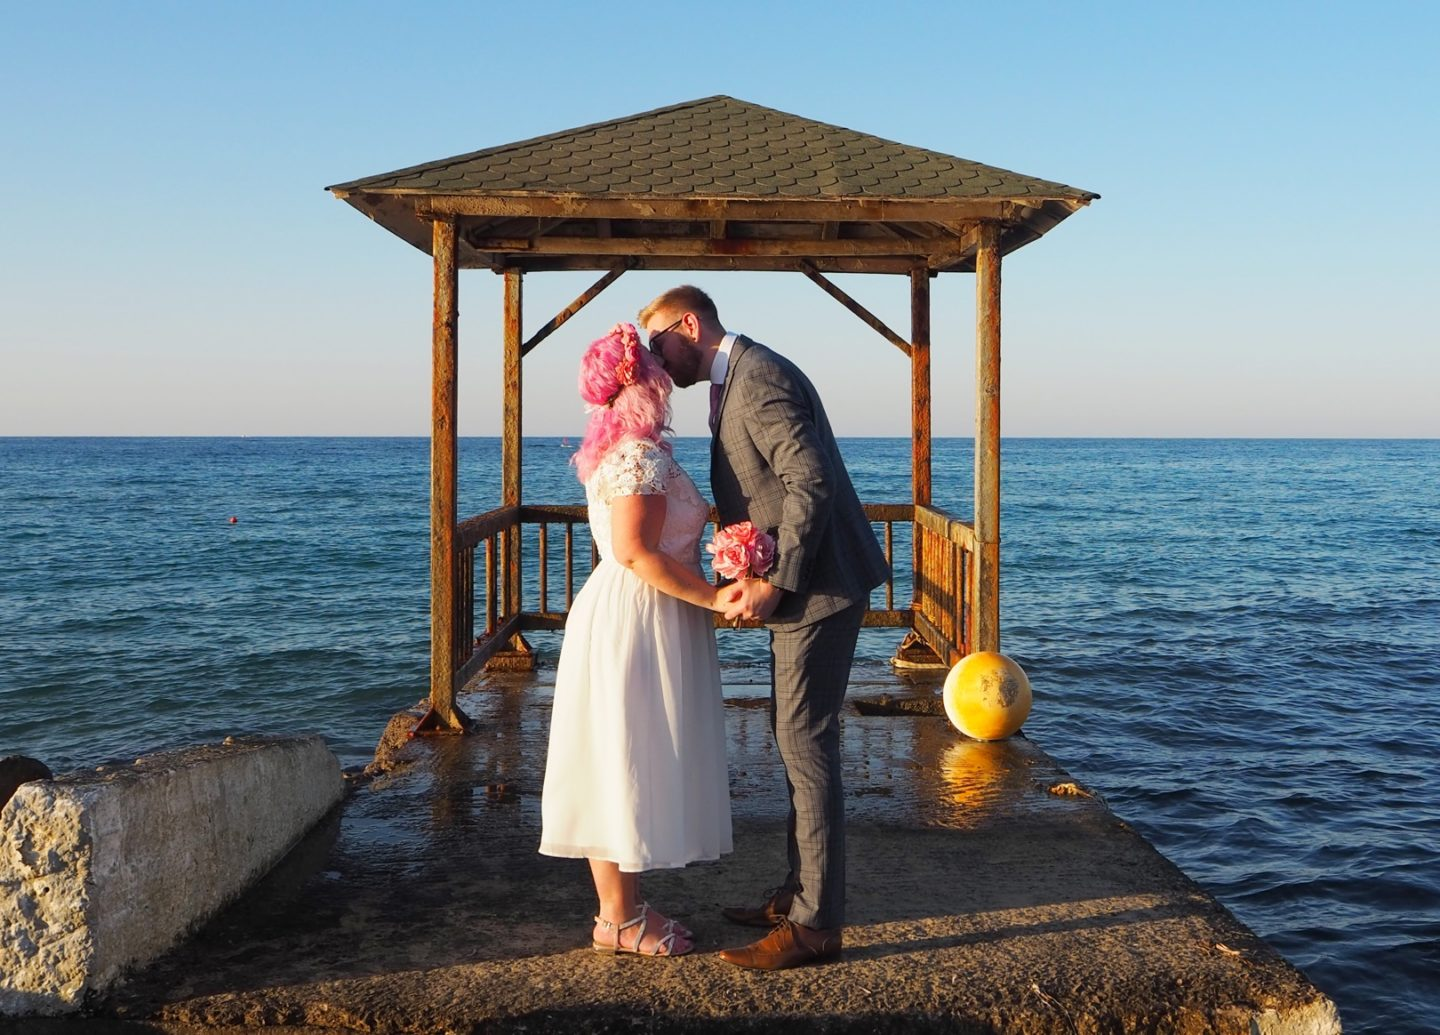 wedding marriage elope married abroad